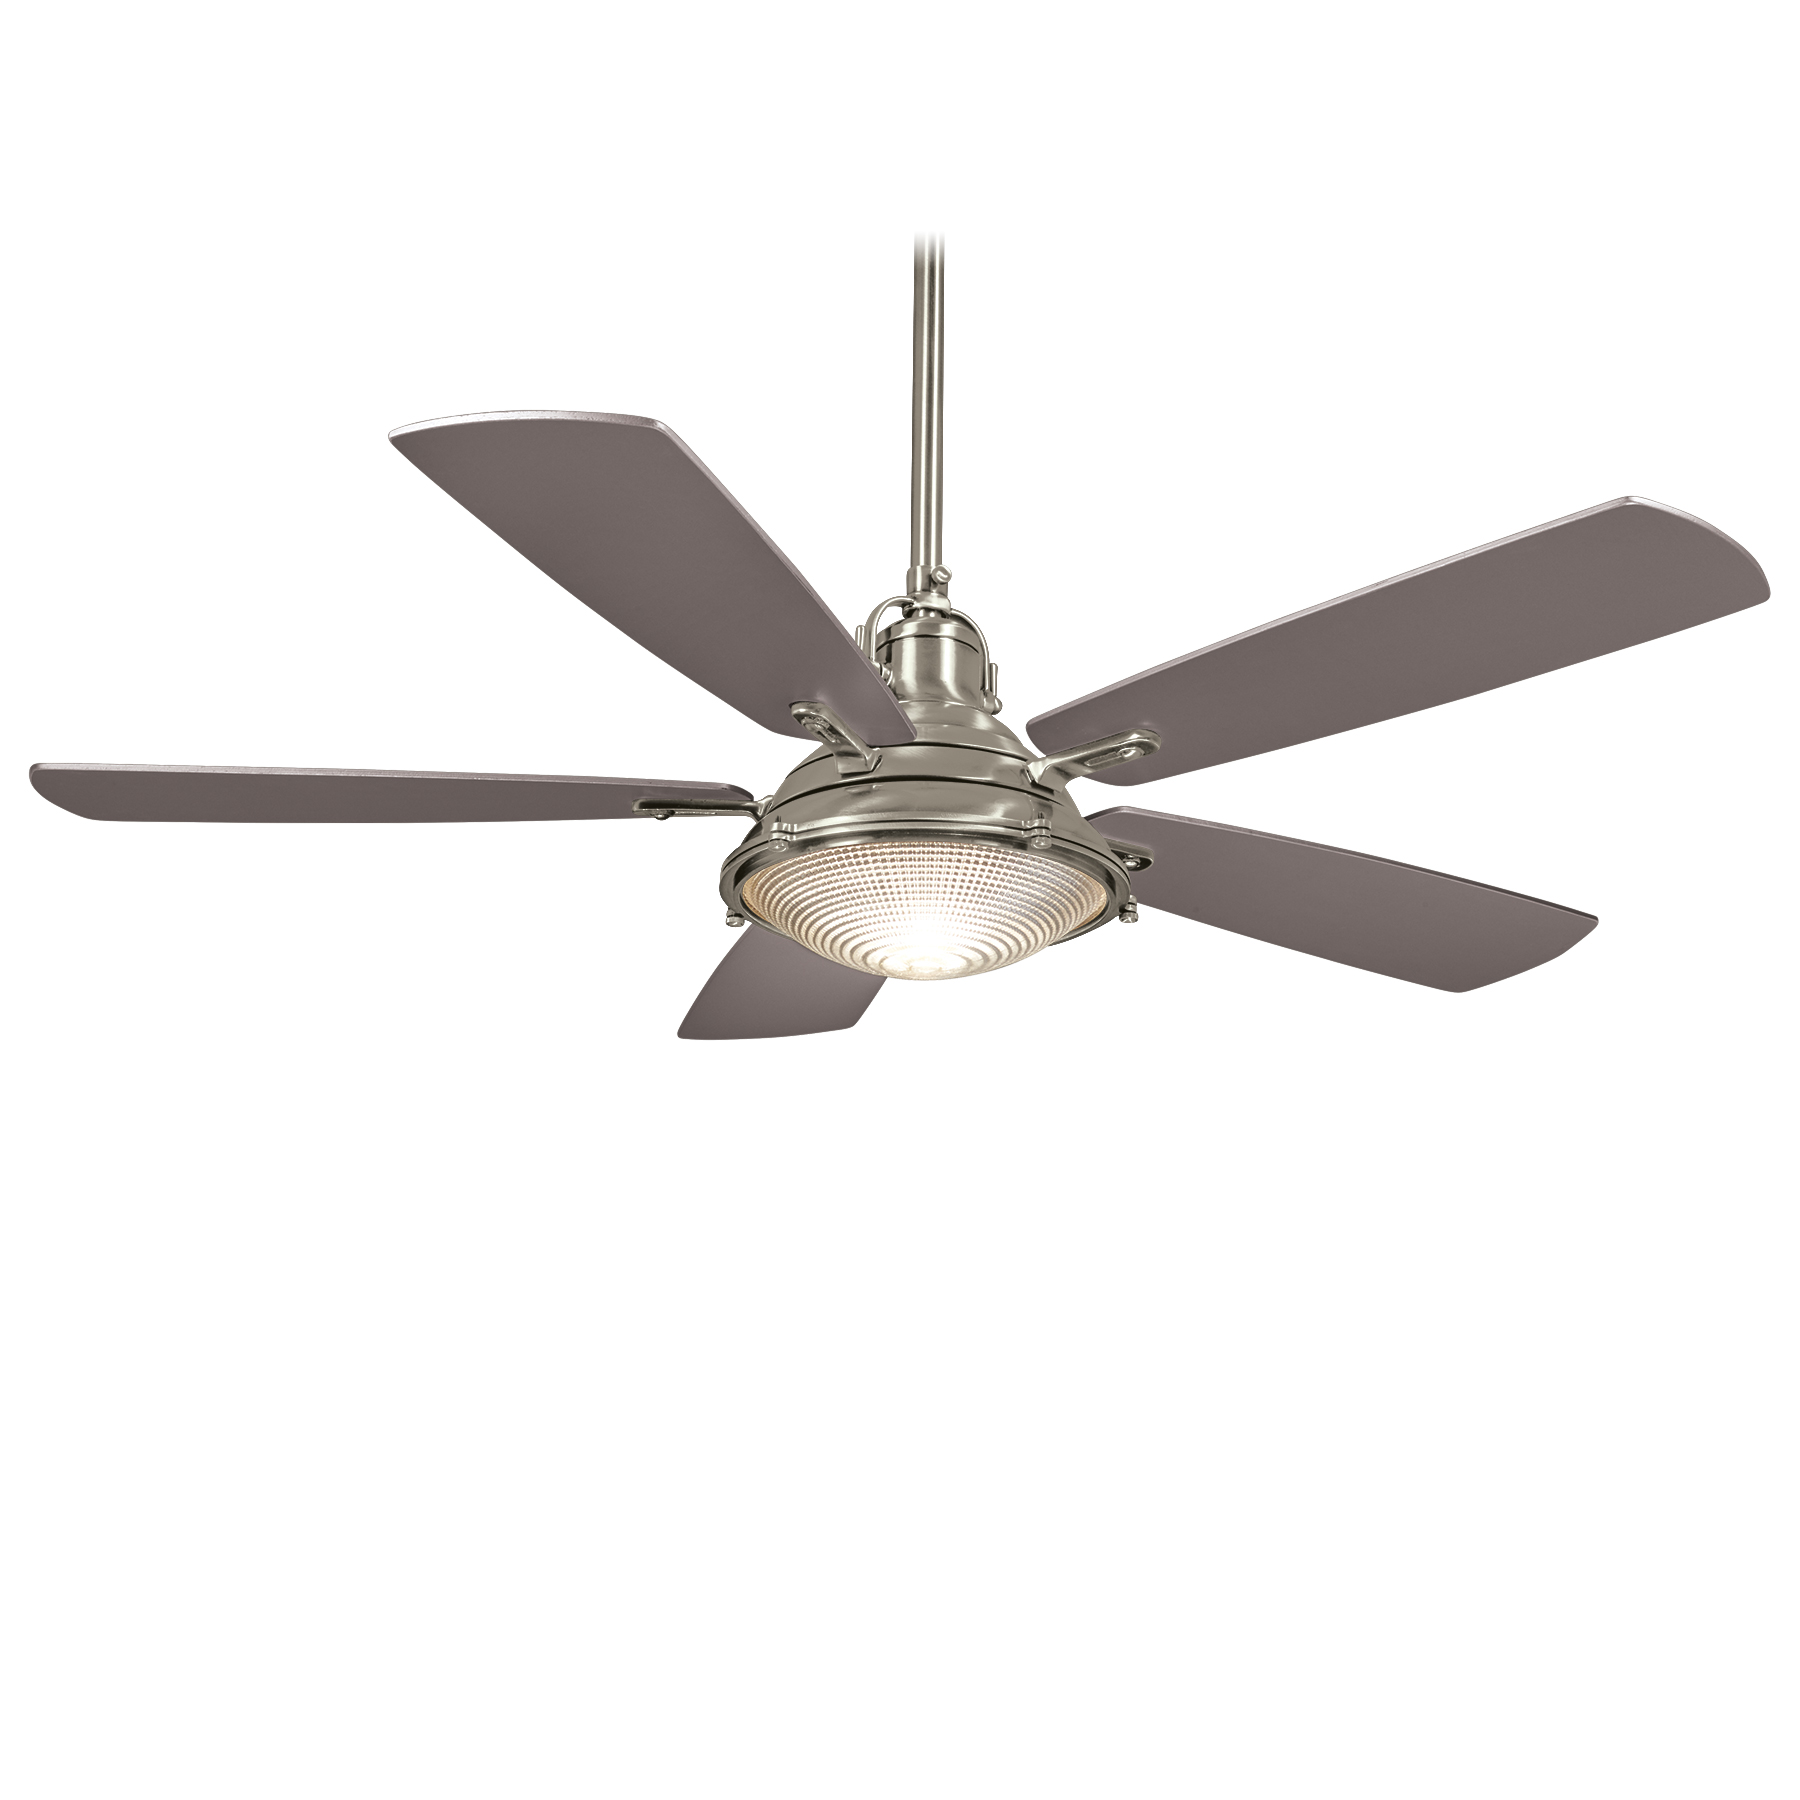 Silver Outdoor Ceiling Fans Minka Group Brands Minka Aire F681 Bnw